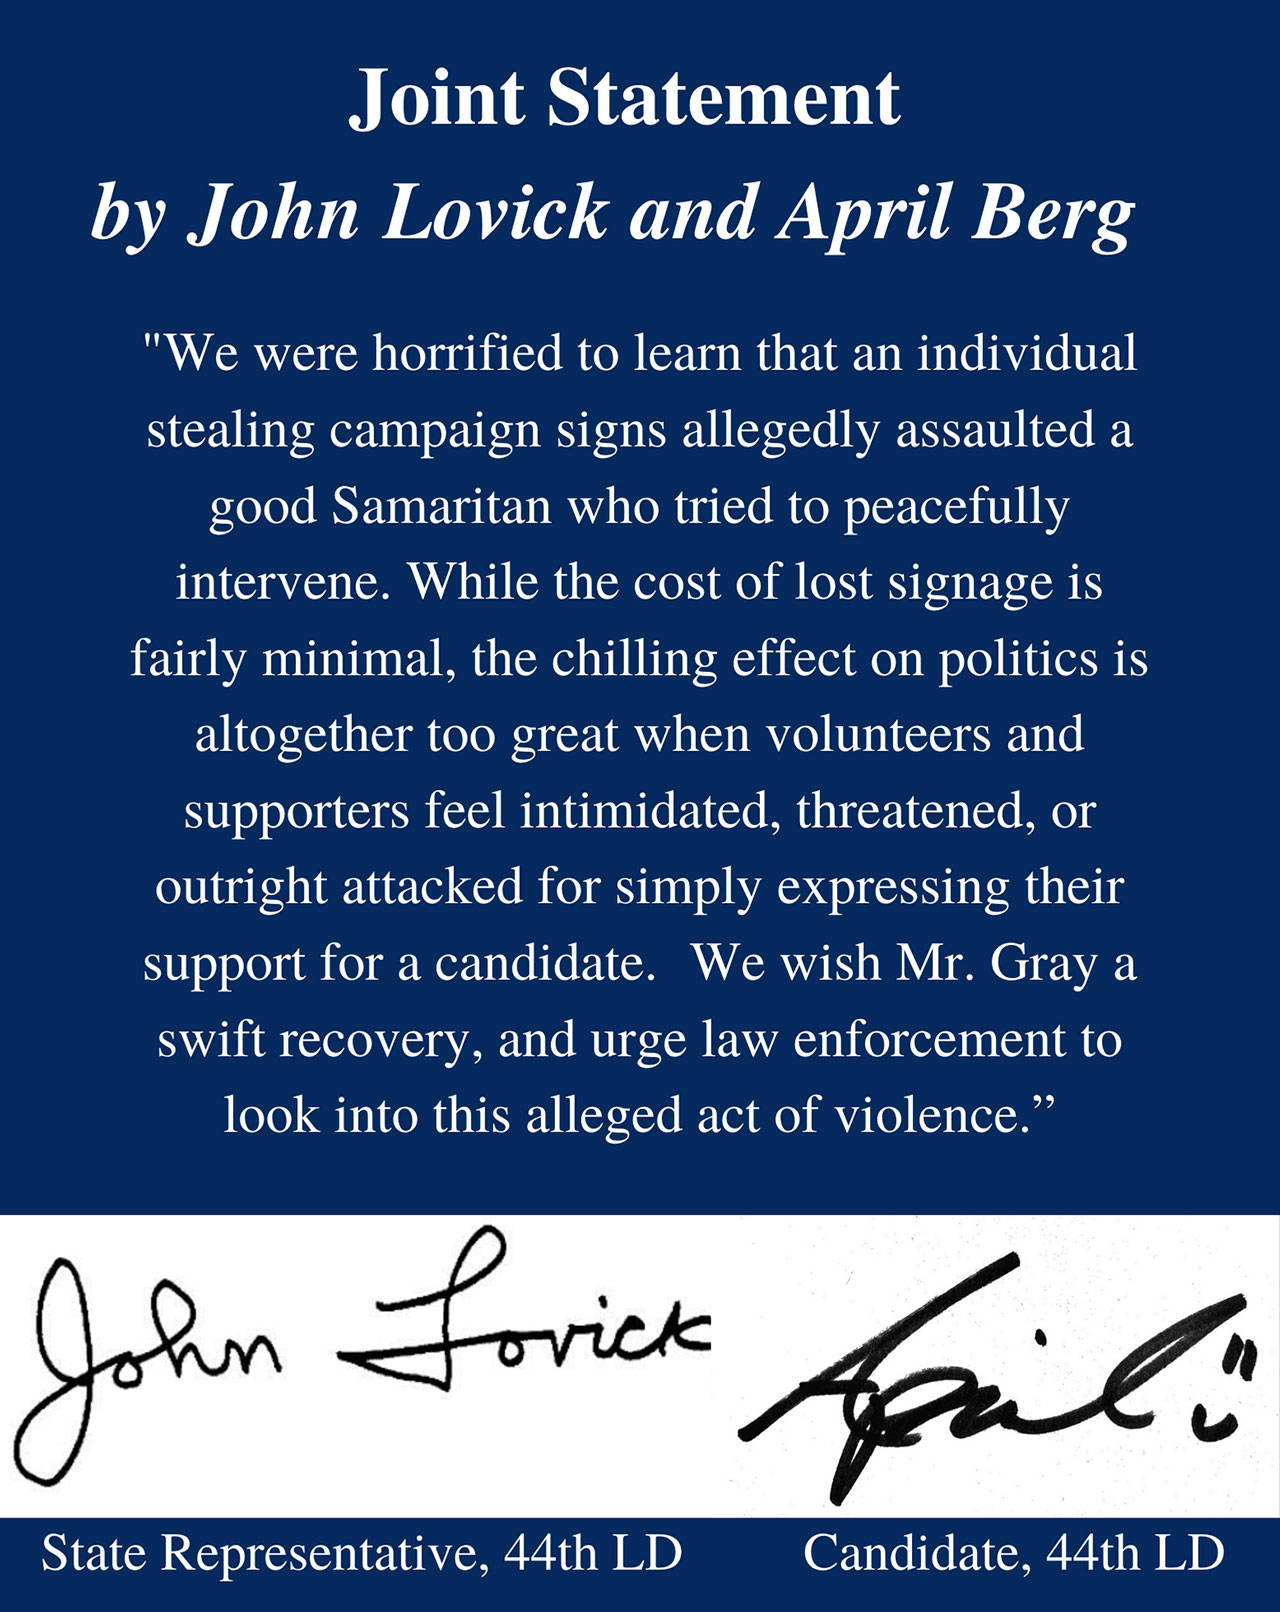 Statement from April Berg and John Lovick from Berg's Facebook page.